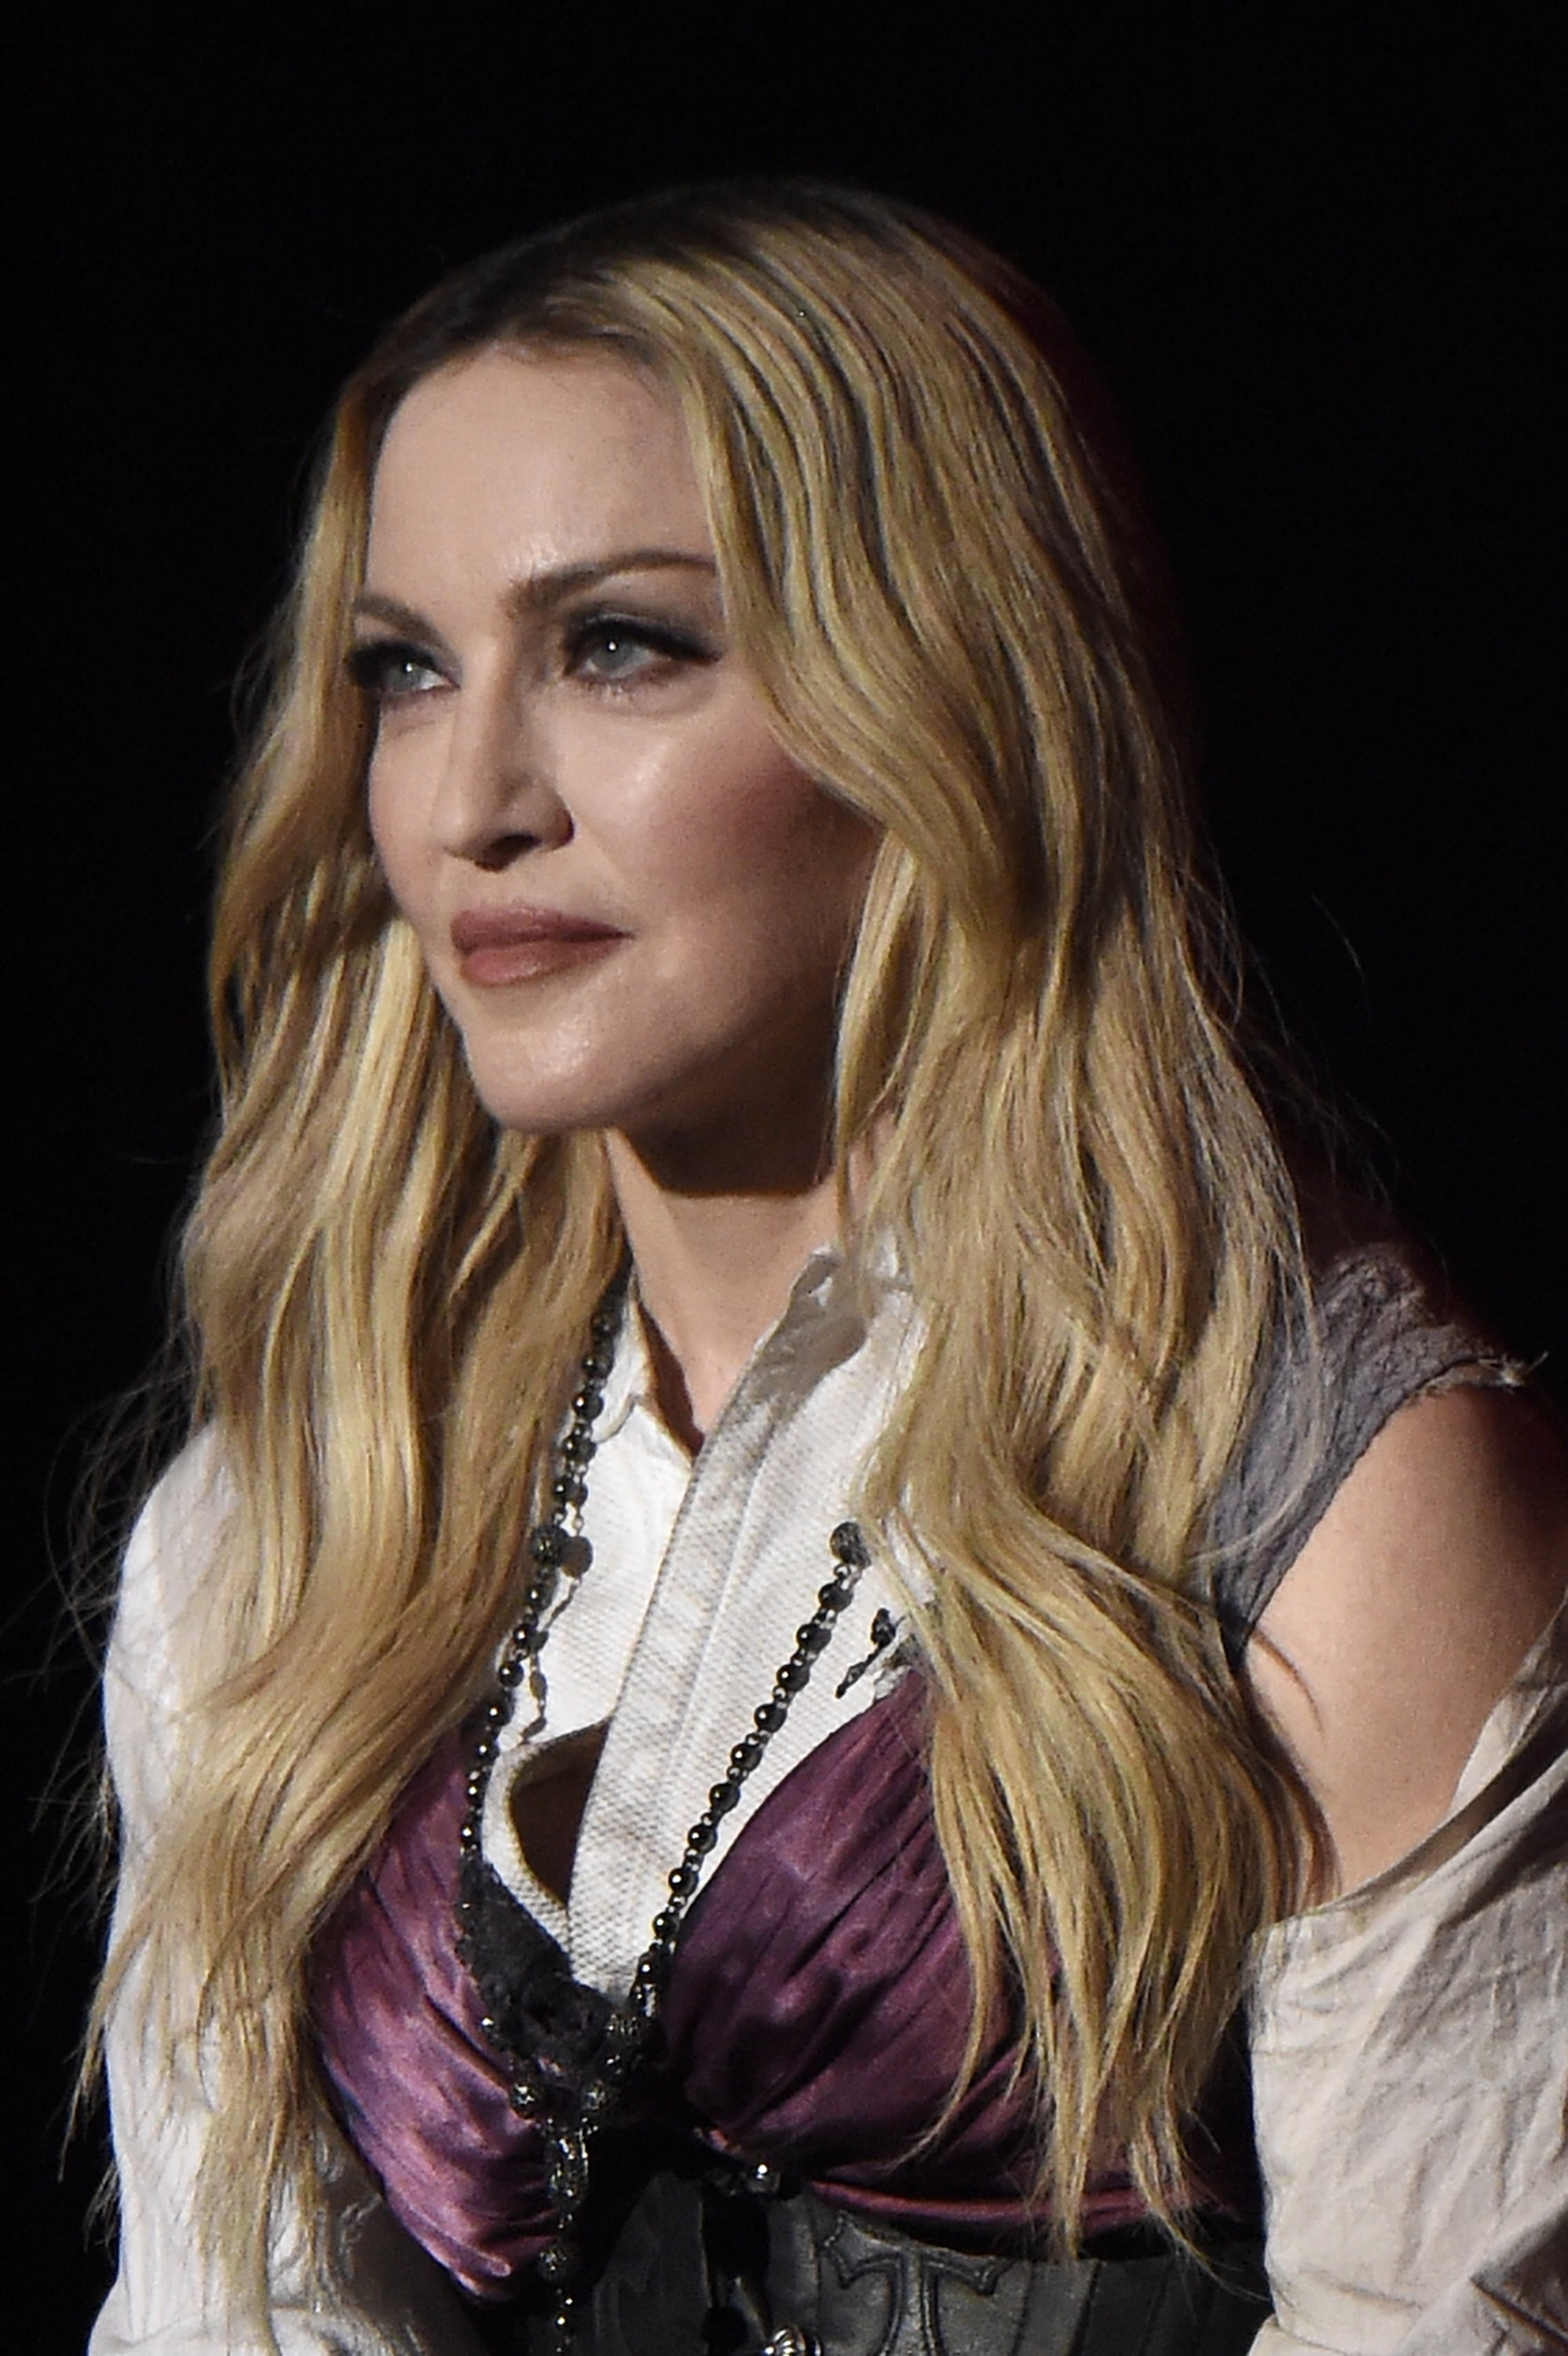 LOS ANGELES, CA - MARCH 29:  Singer Madonna performs onstage during the 2015 iHeartRadio Music Awards which broadcasted live on NBC from The Shrine Auditorium on March 29, 2015 in Los Angeles, California.  (Photo by Kevin Mazur/Getty Images for iHeartMedia)